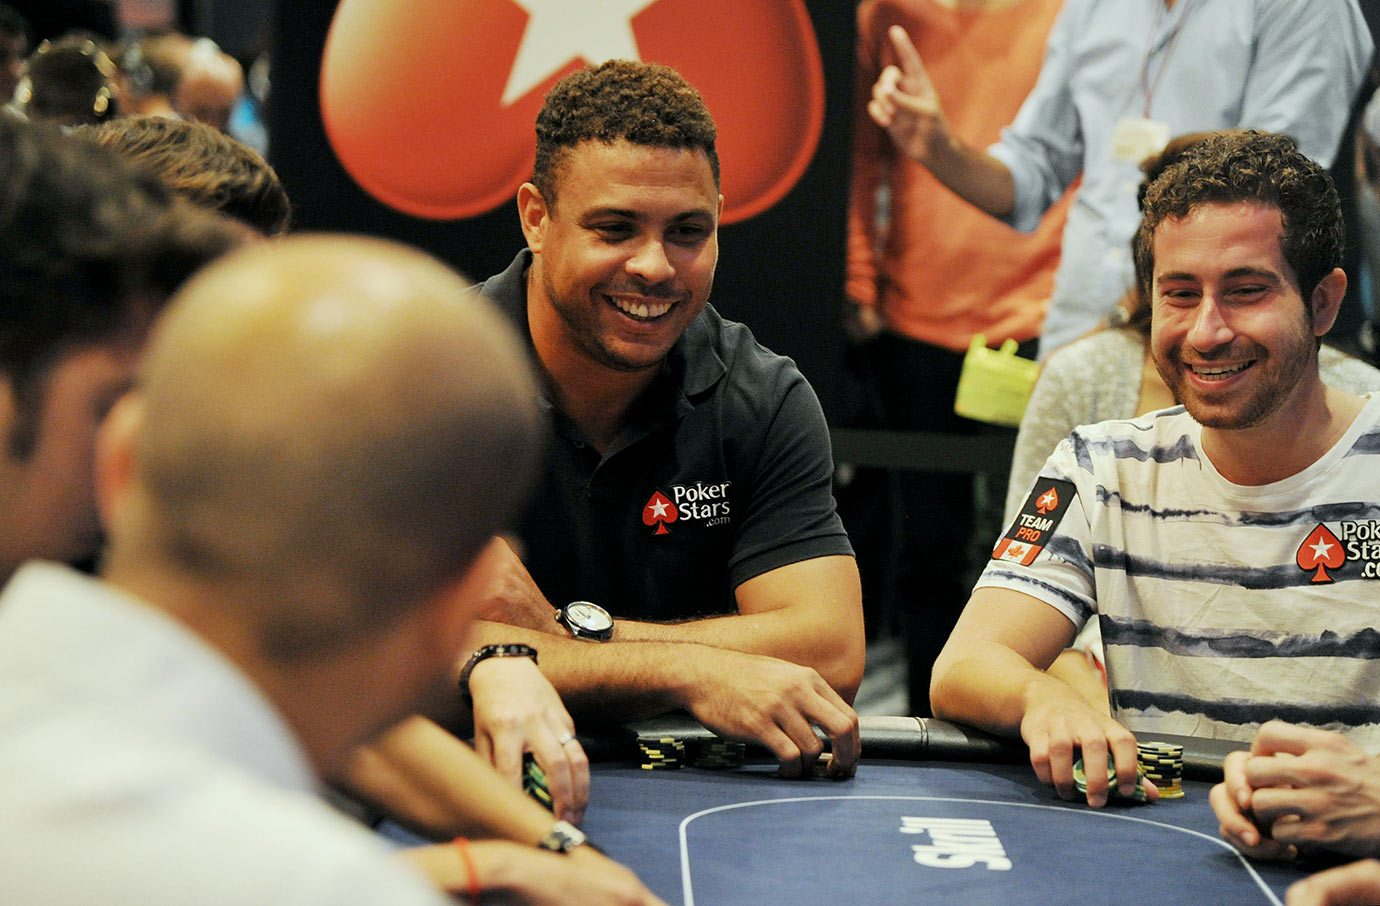 Ronaldo attends the 2013 European Poker Tour in Barcelona.